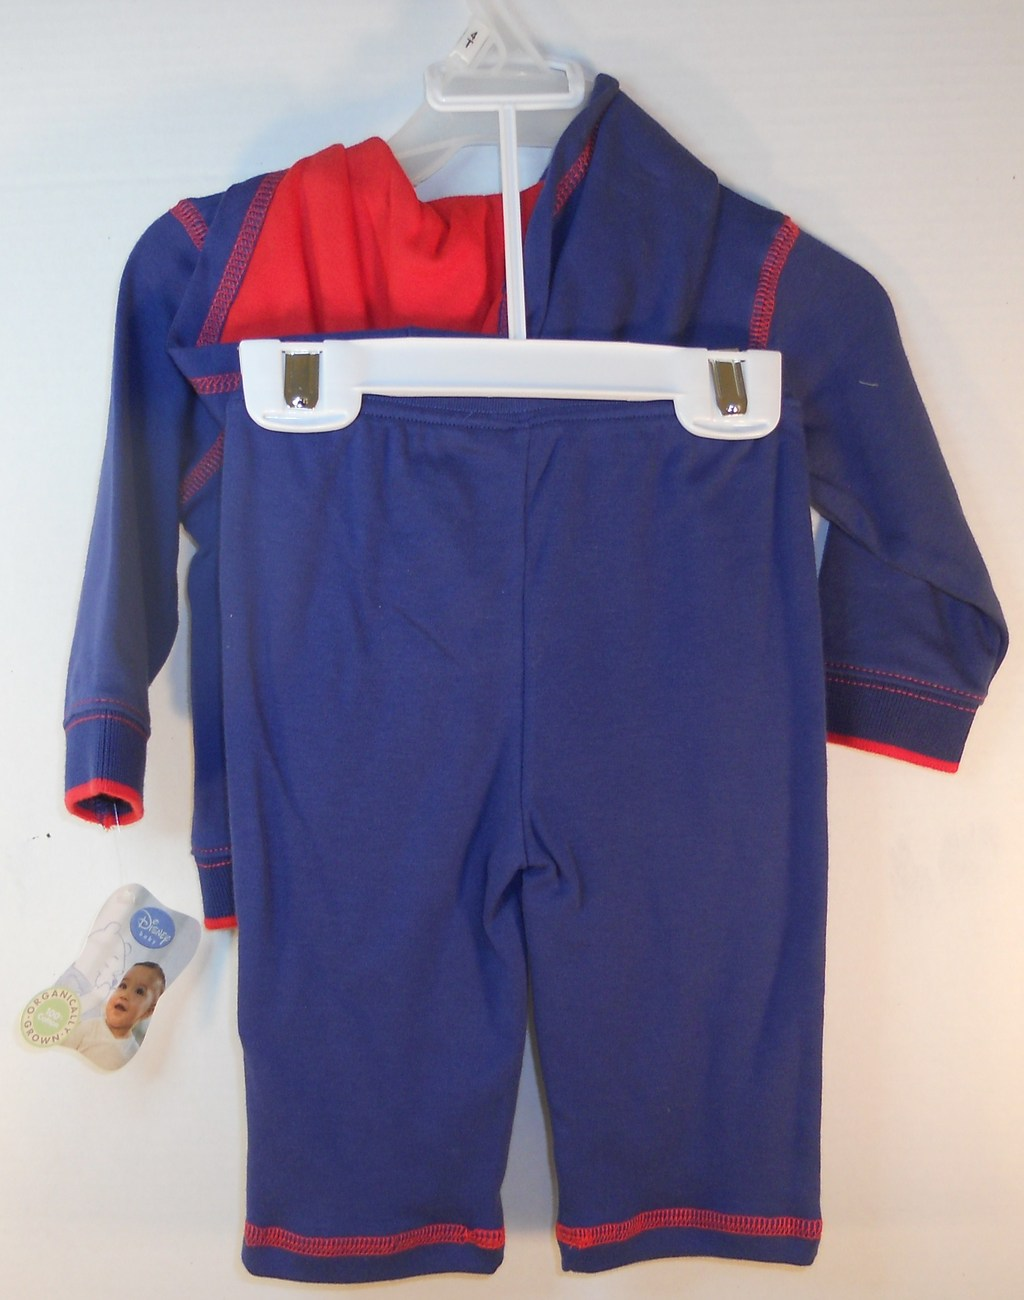 Image 1 of Disney Child Baby Navy red Warm-up suit 3/6 months Winnie the Pooh